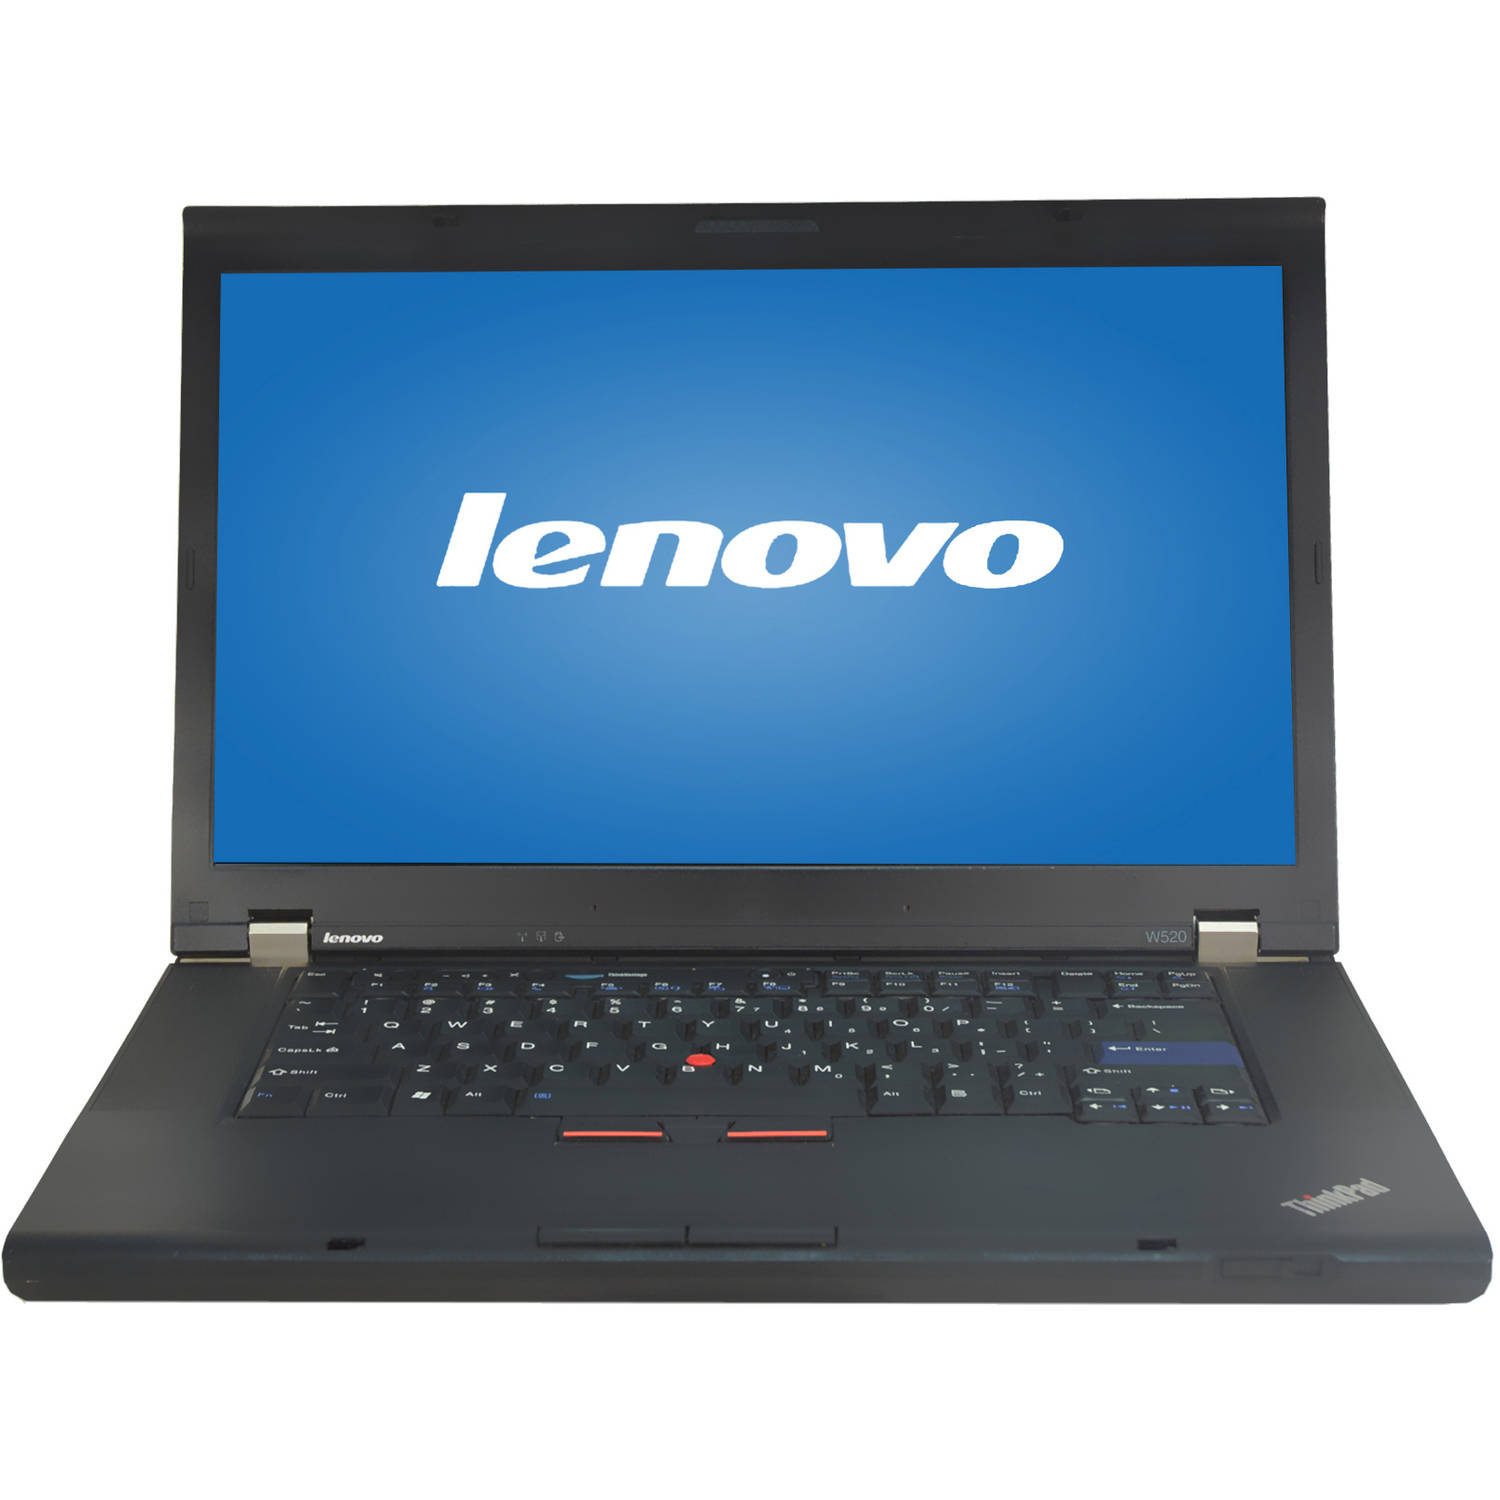 "Refurbished Lenovo 15.6"" ThinkPad W520 Laptop PC with Intel Core i7-2760QM Processor, 16GB Memory, 256GB... by Lenovo"